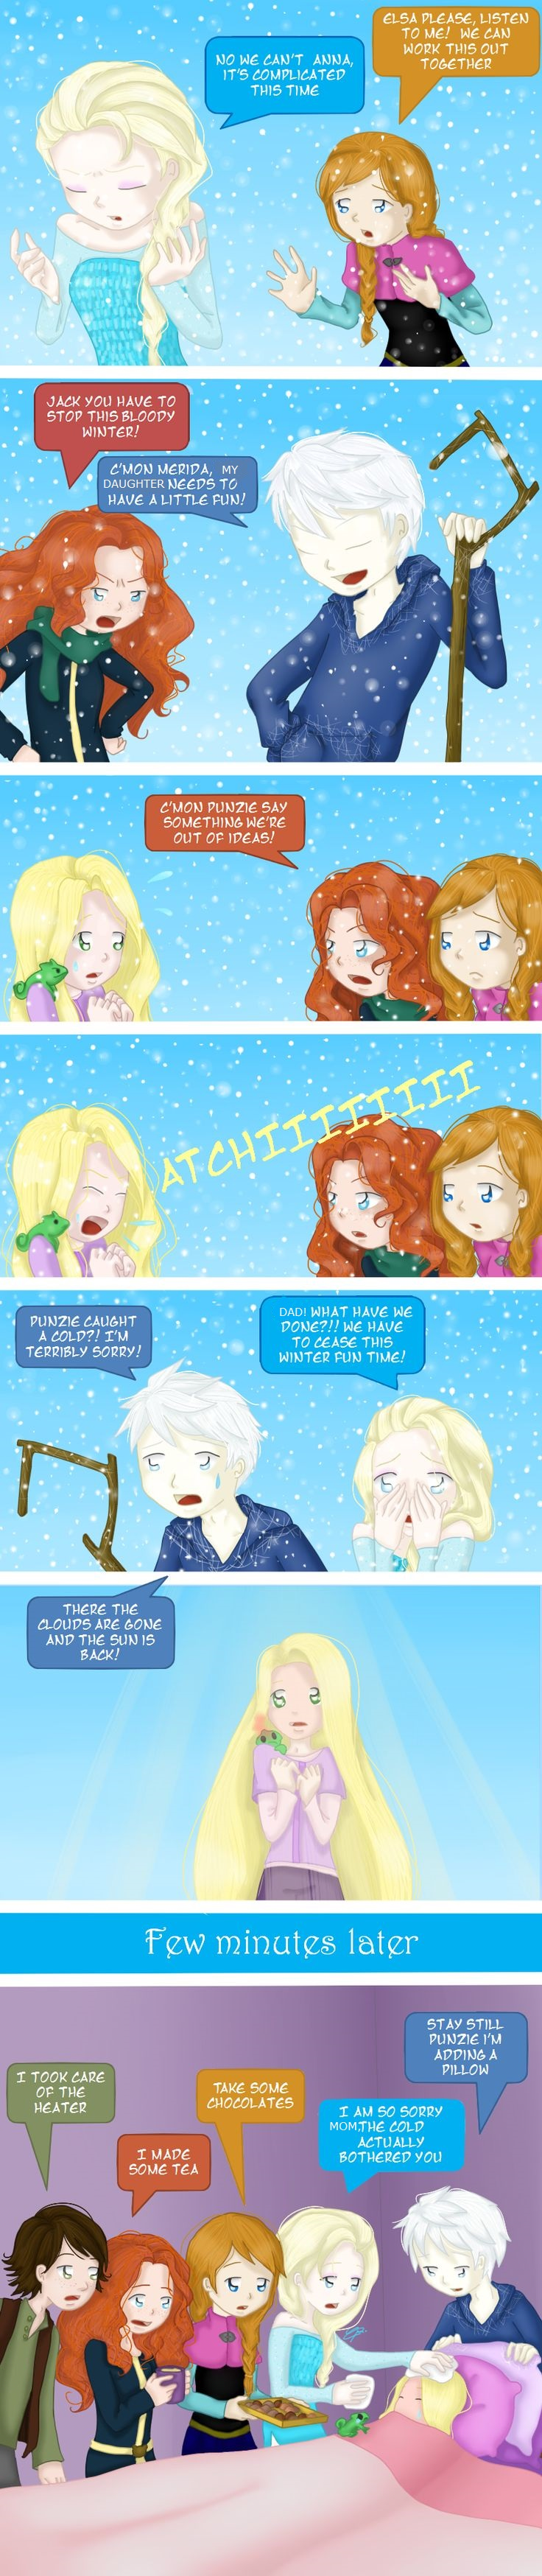 Frozen, Tangled, Rise of the Guardians (RotG), Brave and How To Train Your Dragon (HTTYD) crossover. Big four. Elsa, Anna, Merida, Jack, Rapunzel, Hiccup. Jackunzel family.